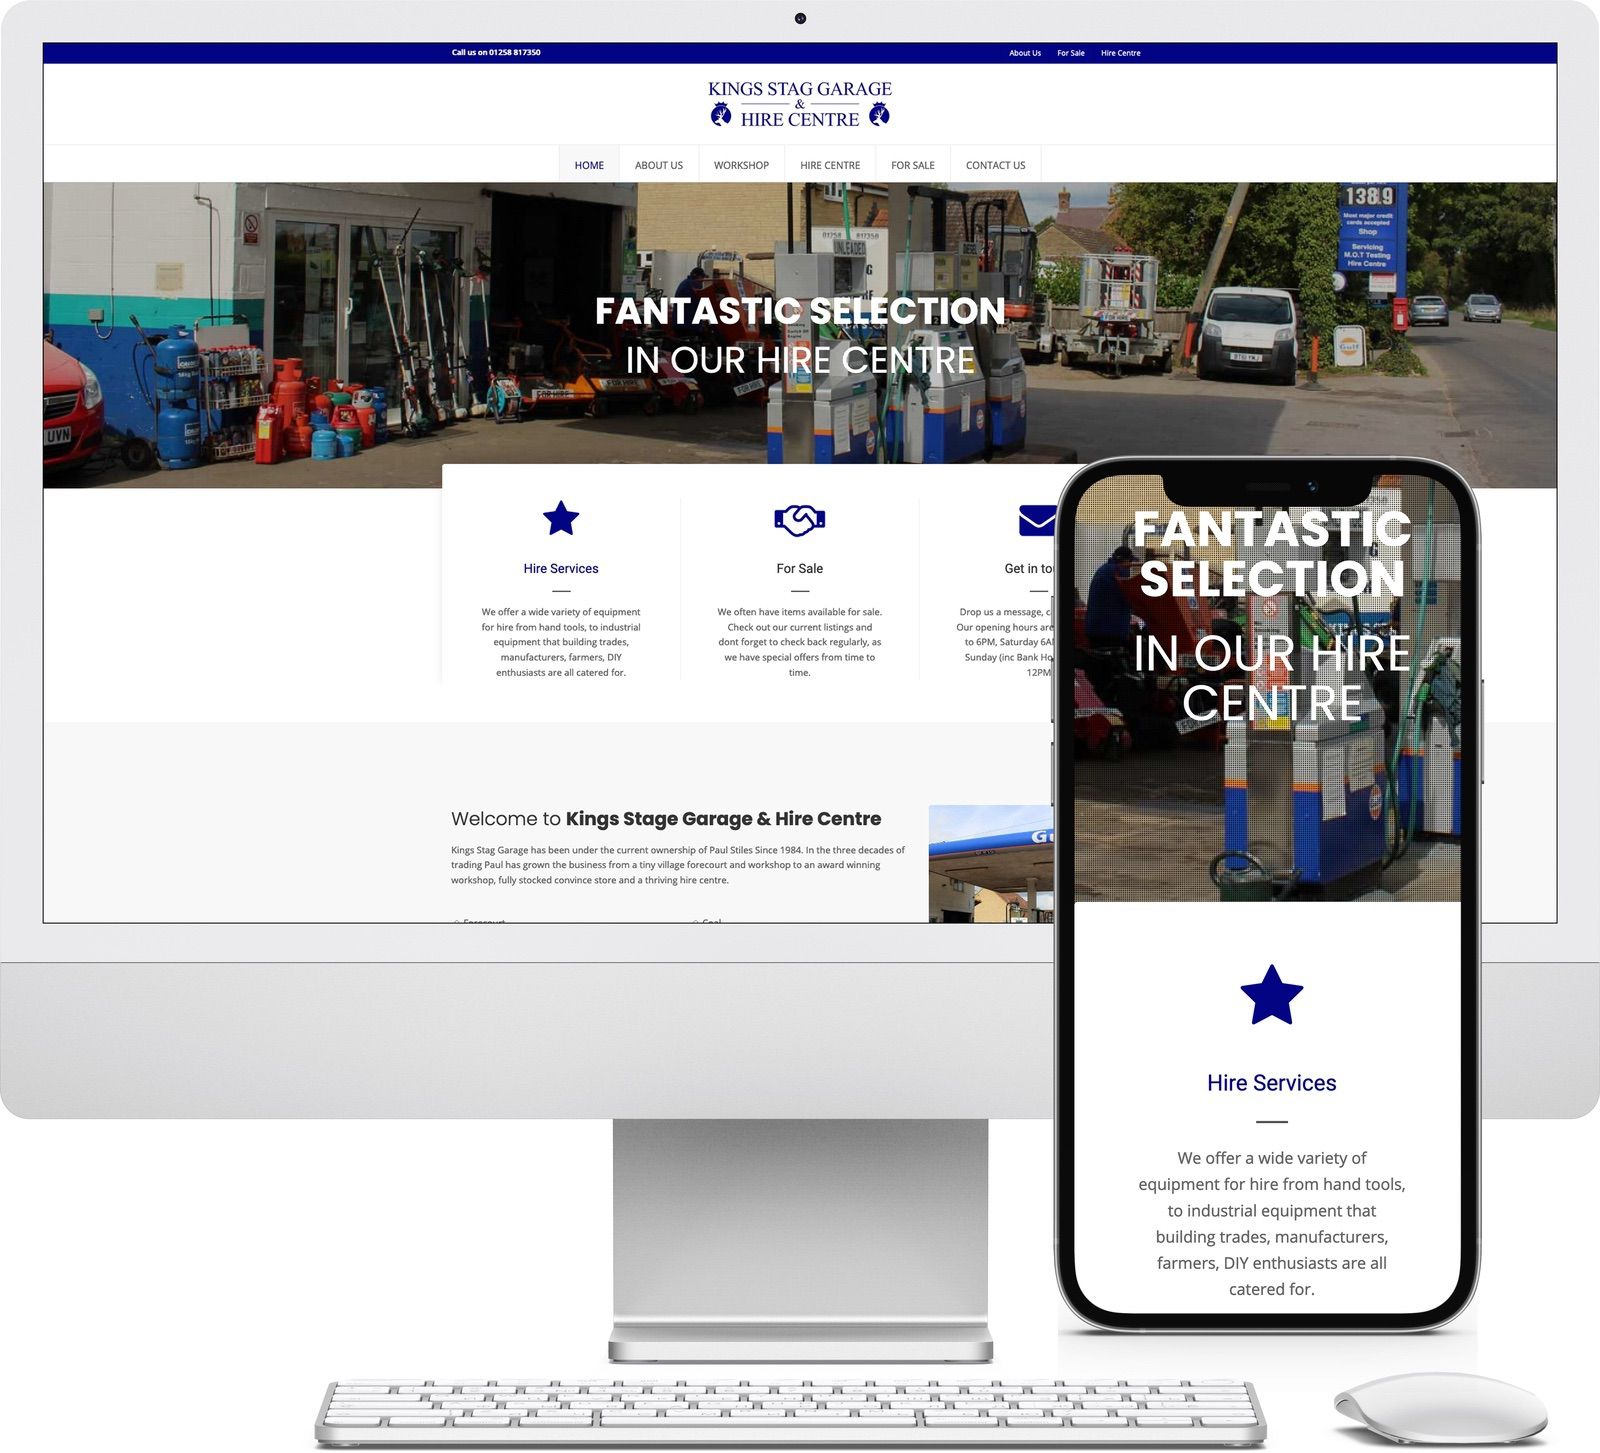 Kings Stage Garage and Hire Centre iMac and iPhone mockup image - Riotspace Creative